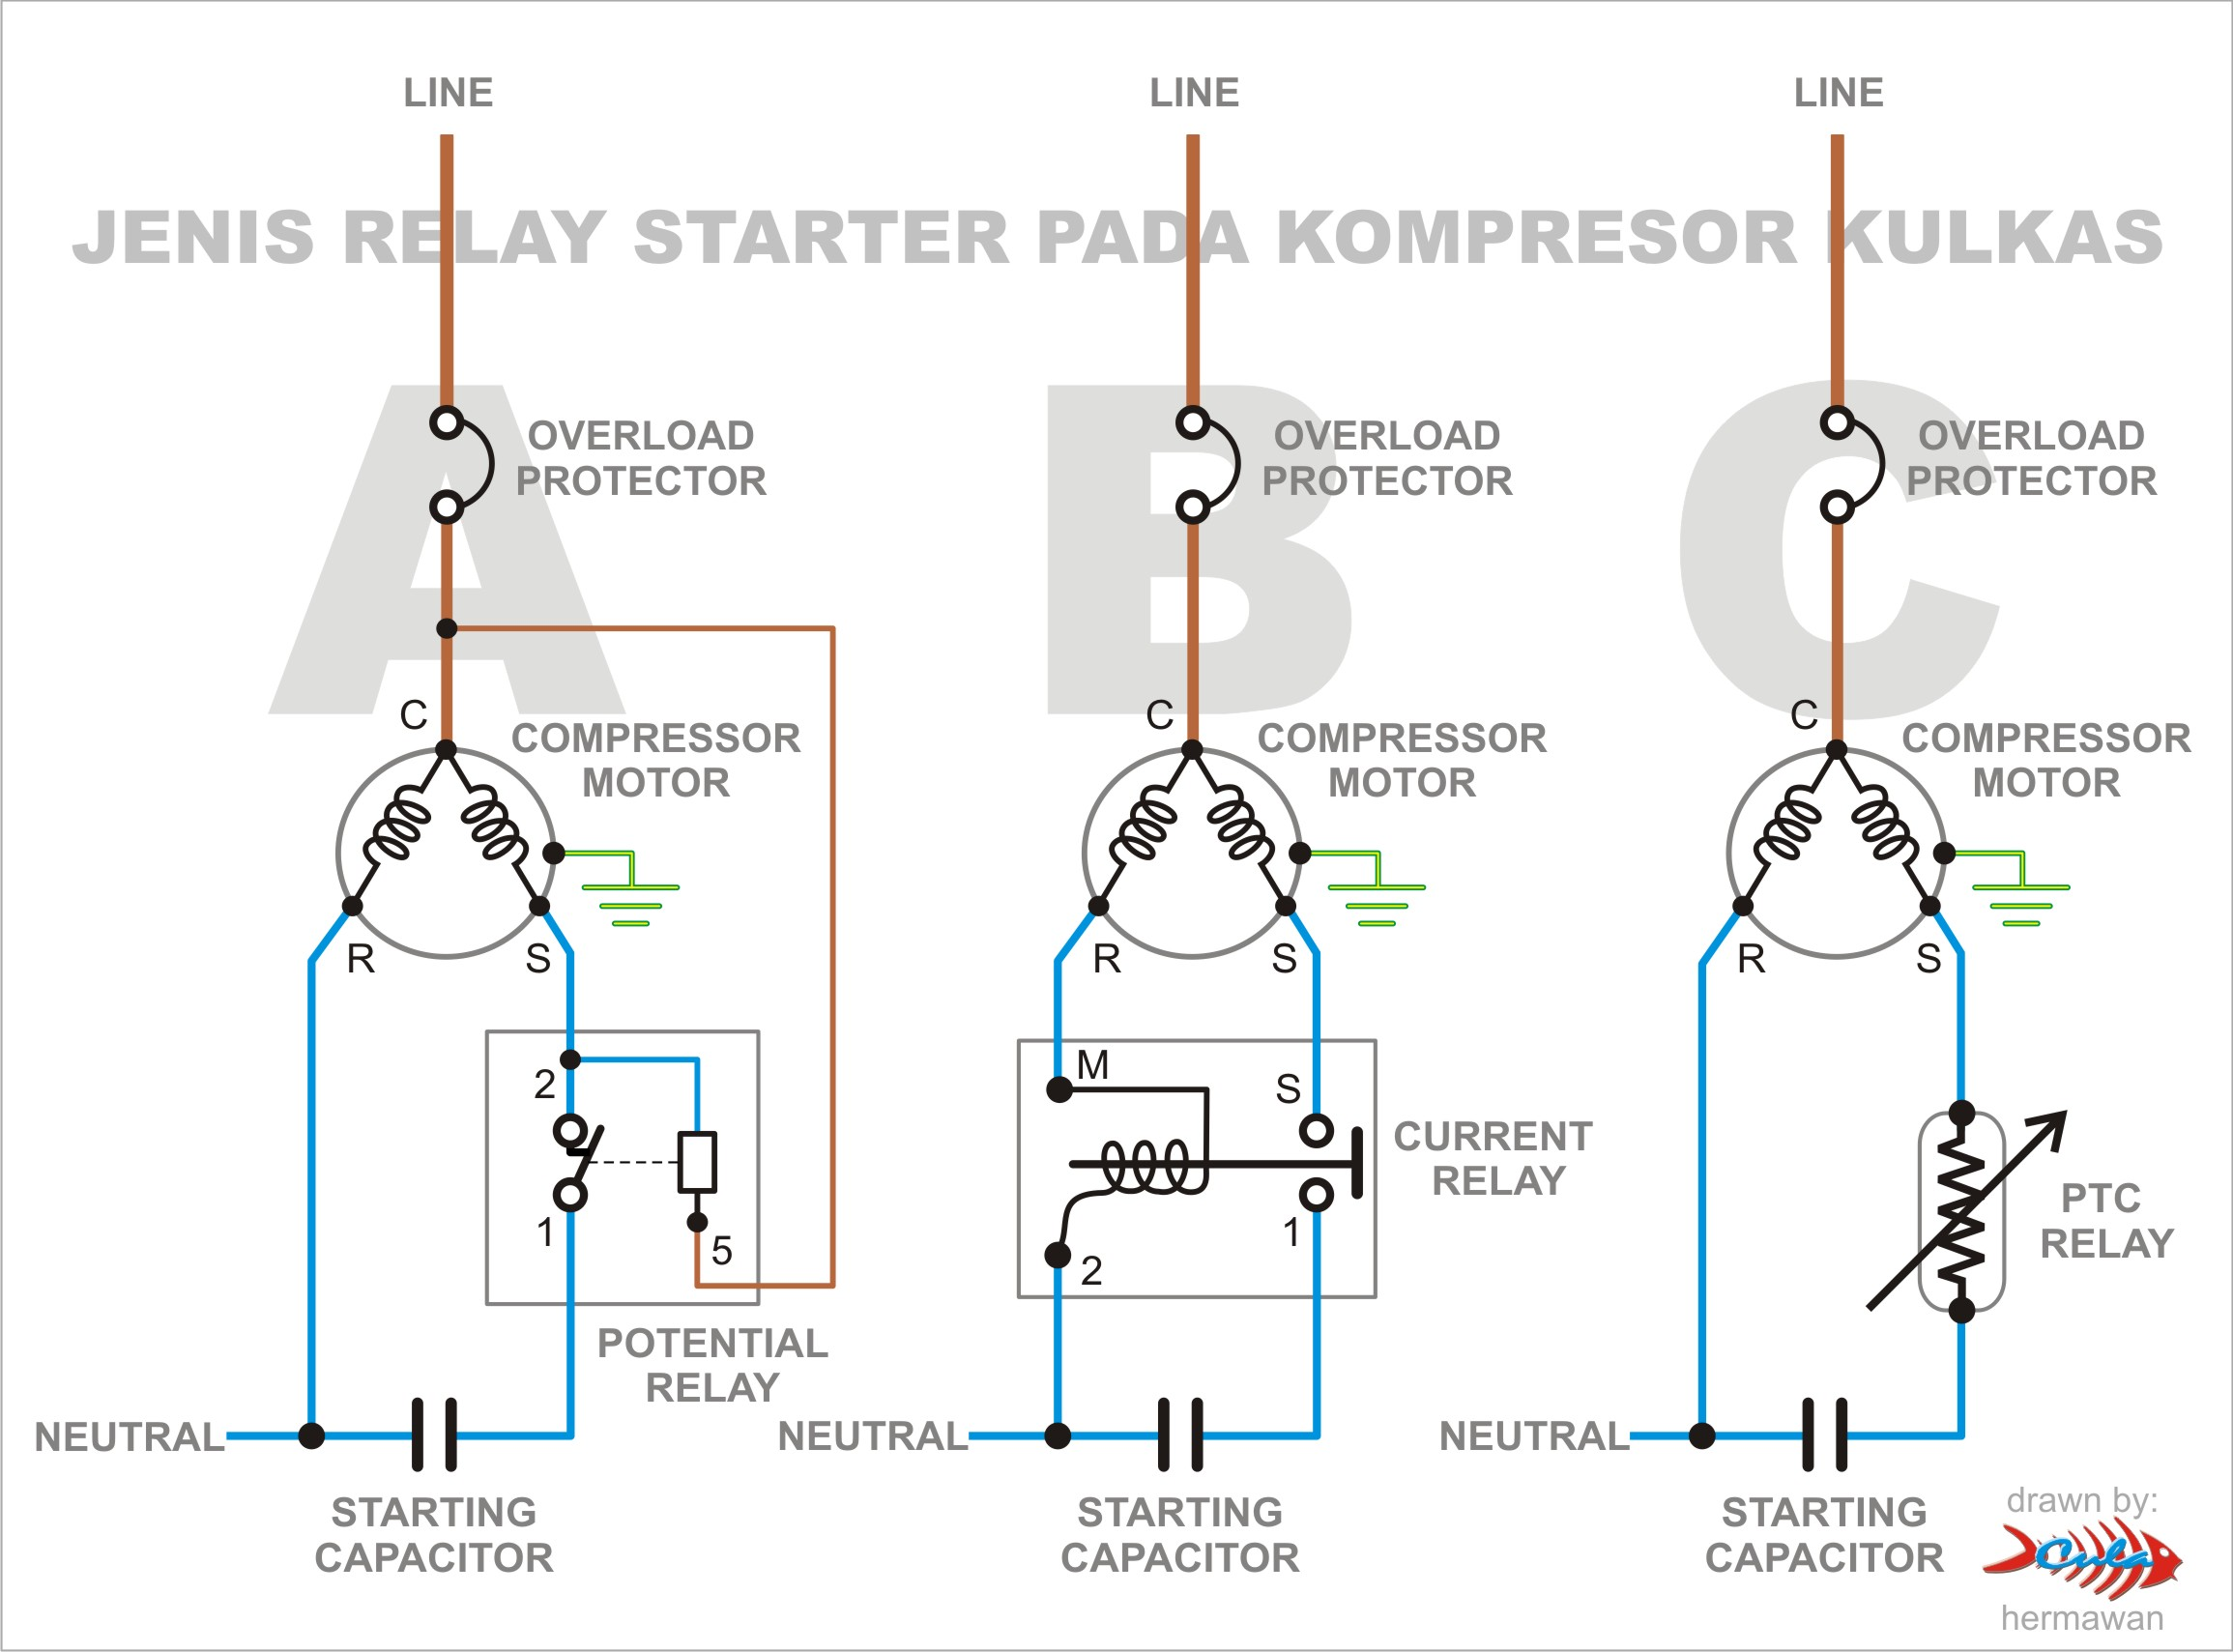 refrigerator start relay wiring diagram 95 ford ranger radio jenis kulkas & penyambungan kelistrikannya | pt. teach integration